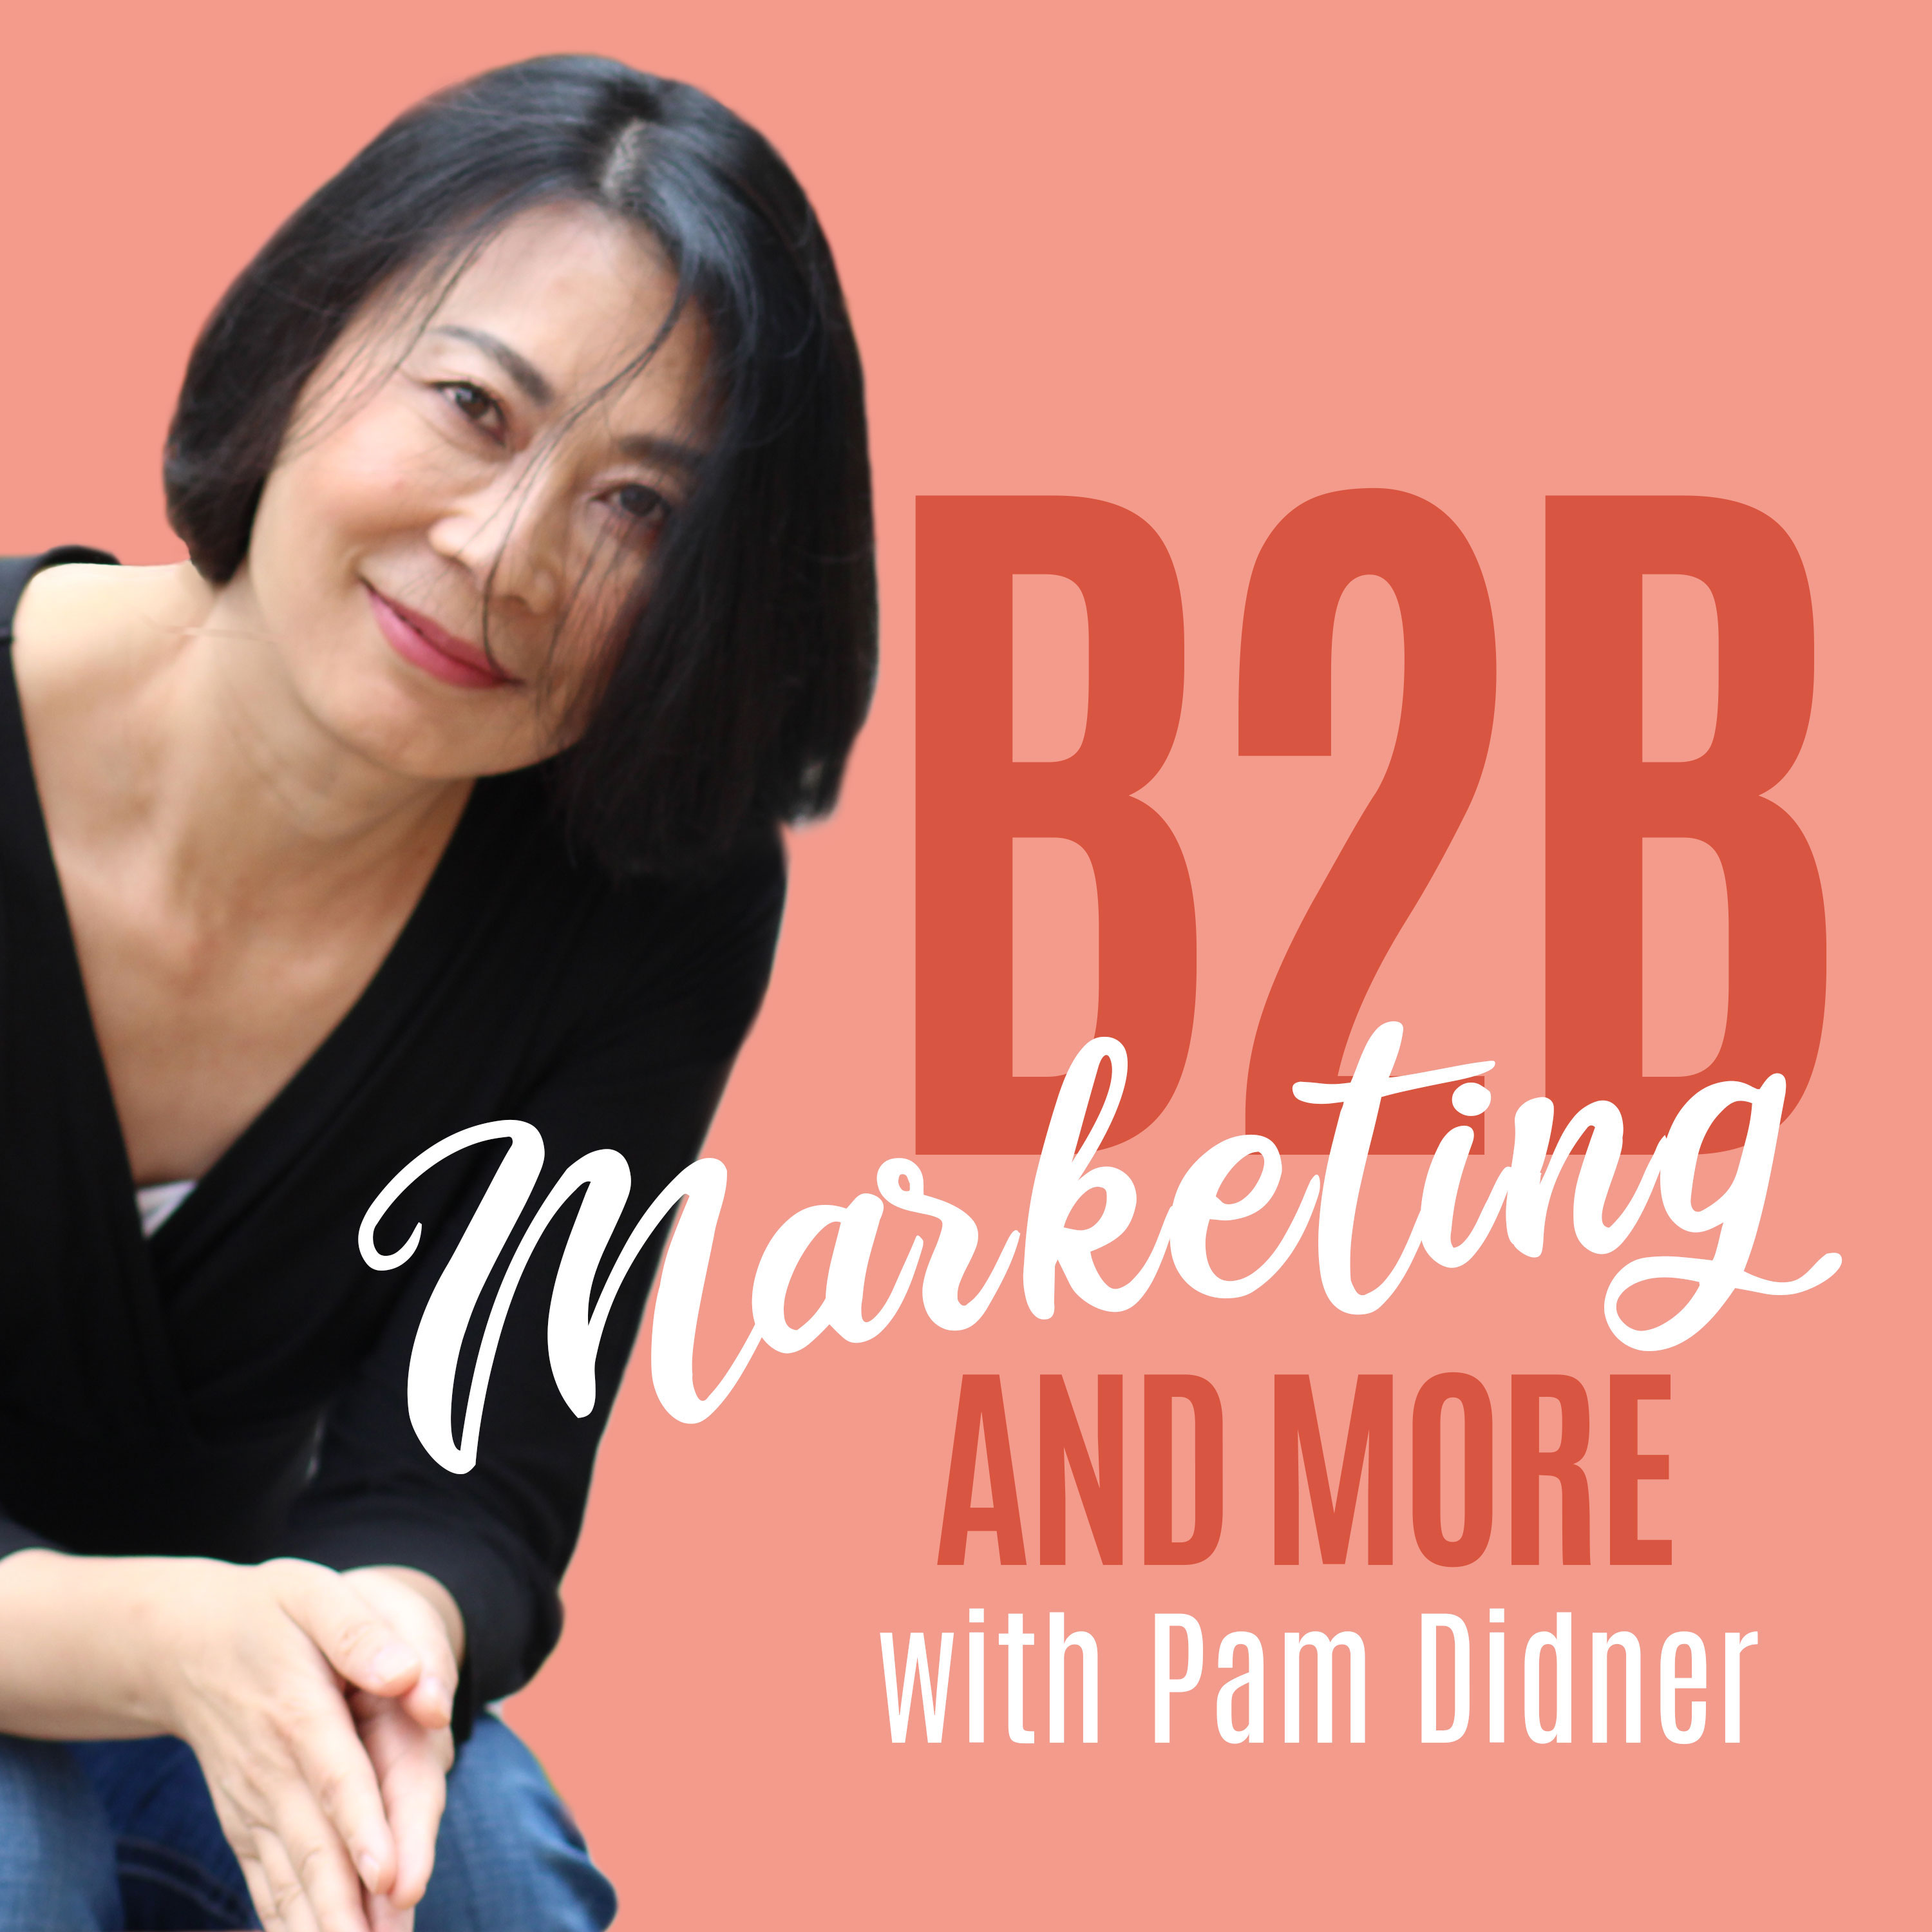 B2B Marketing and More With Pam Didner show art